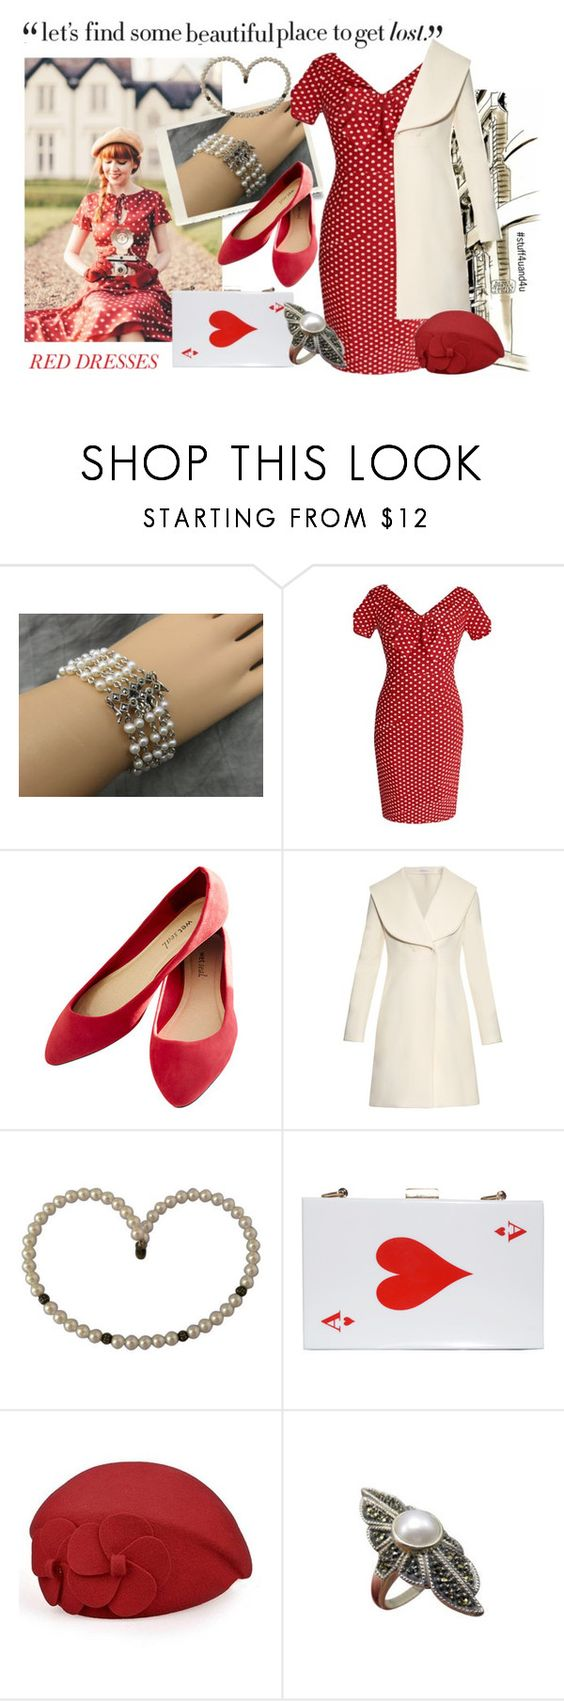 """Pearls and Polka Dots"" by stuff4uand4u ❤ liked on Polyvore featuring Judith Jack, Wet Seal, J.W. Anderson, Rare London, reddress and stuff4uand4u"